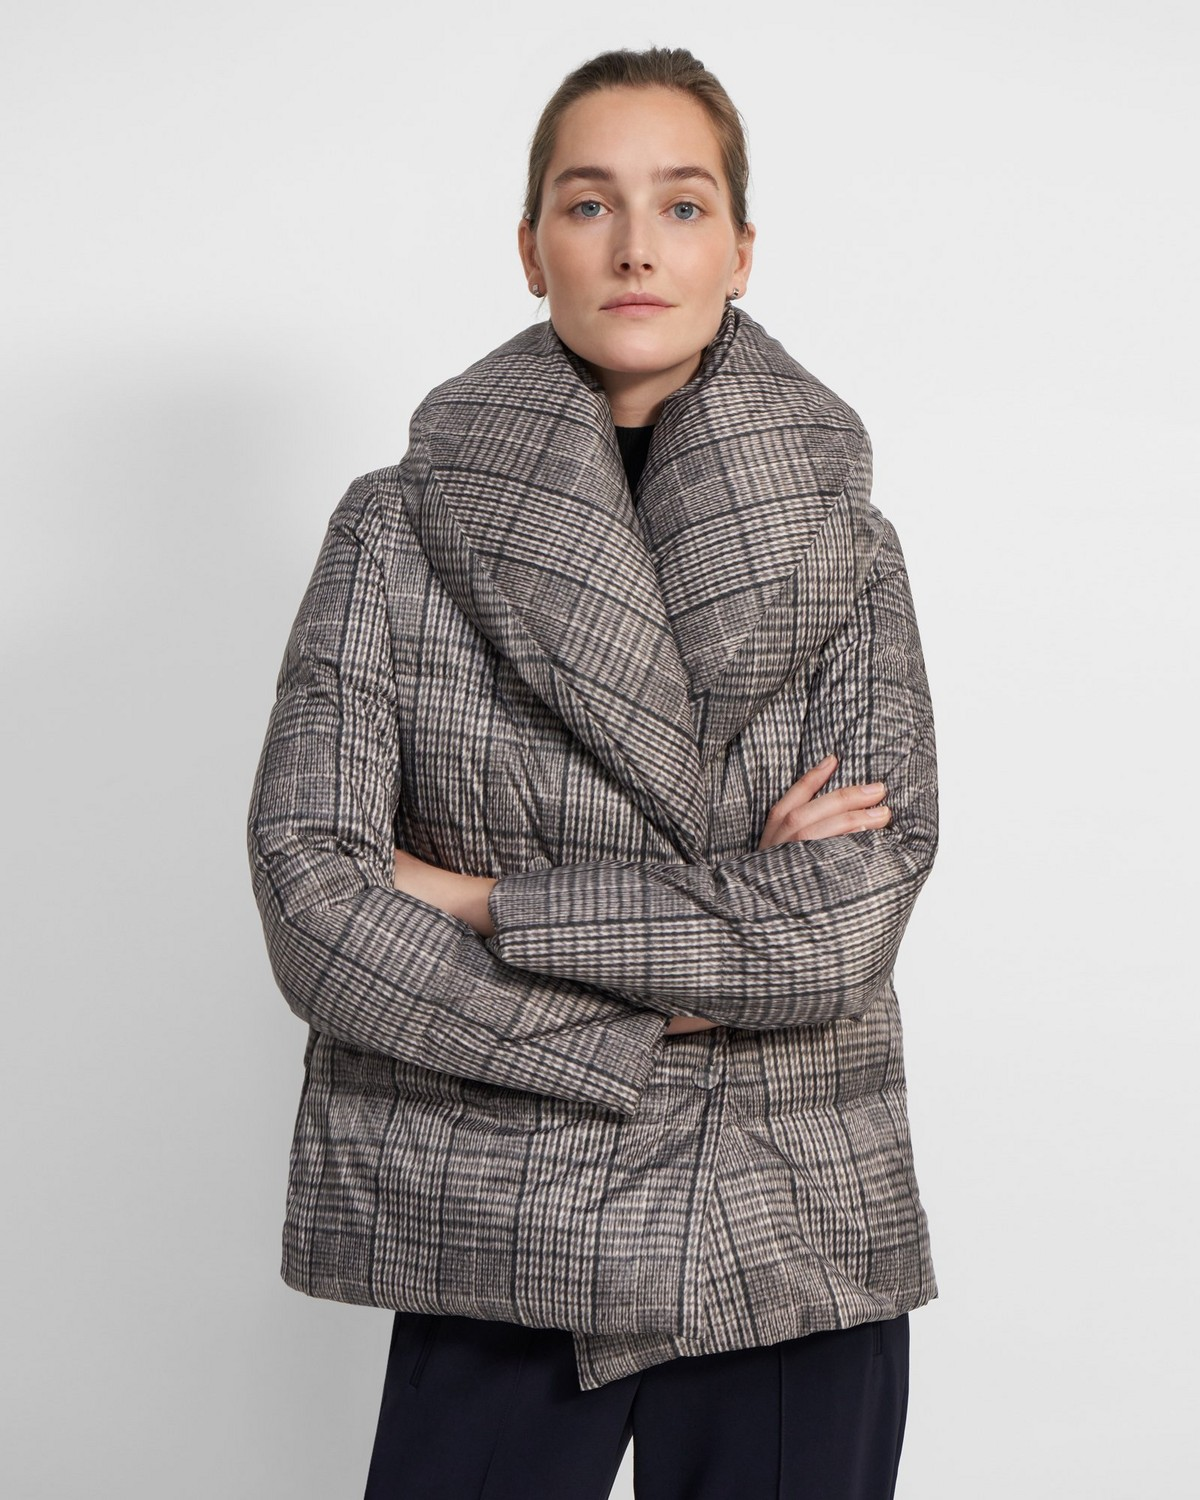 Shawl Puffer Down Jacket in Recycled Plaid